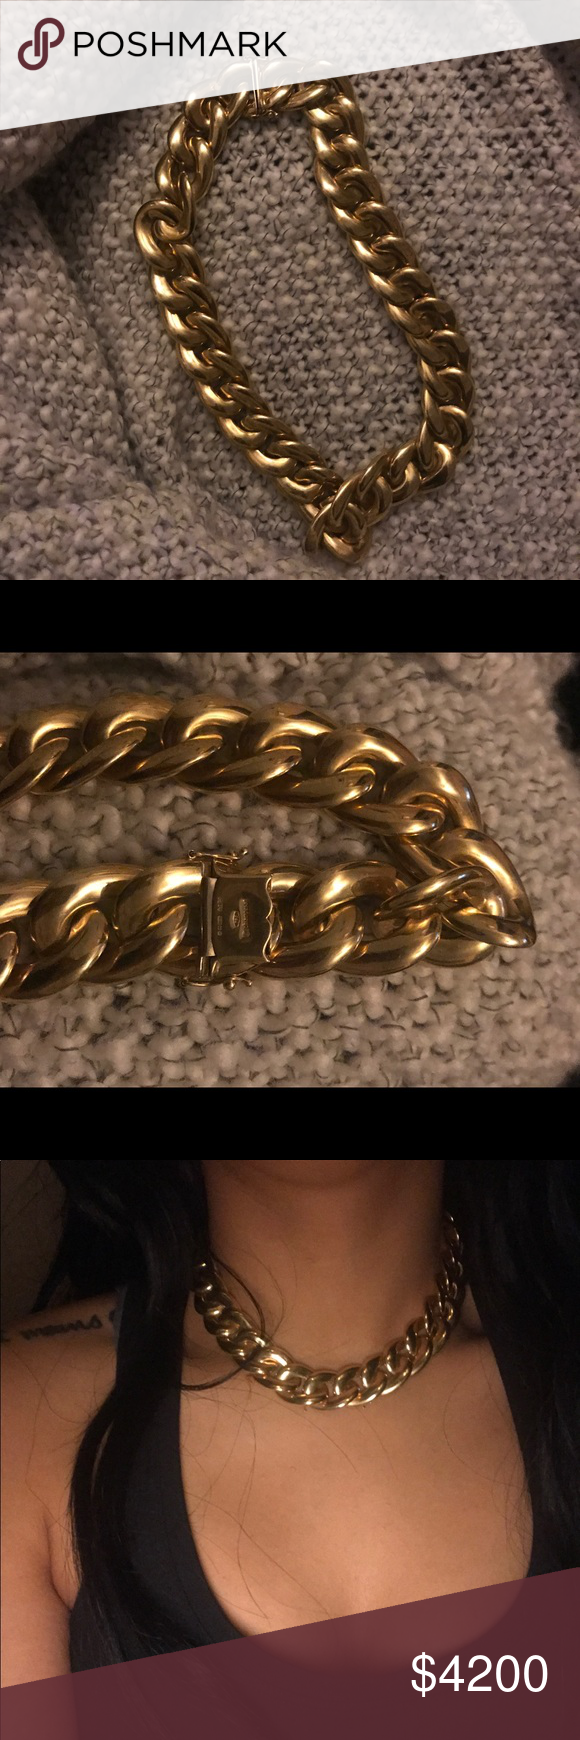 K yellow gold chain k yellow gold solid gold grams